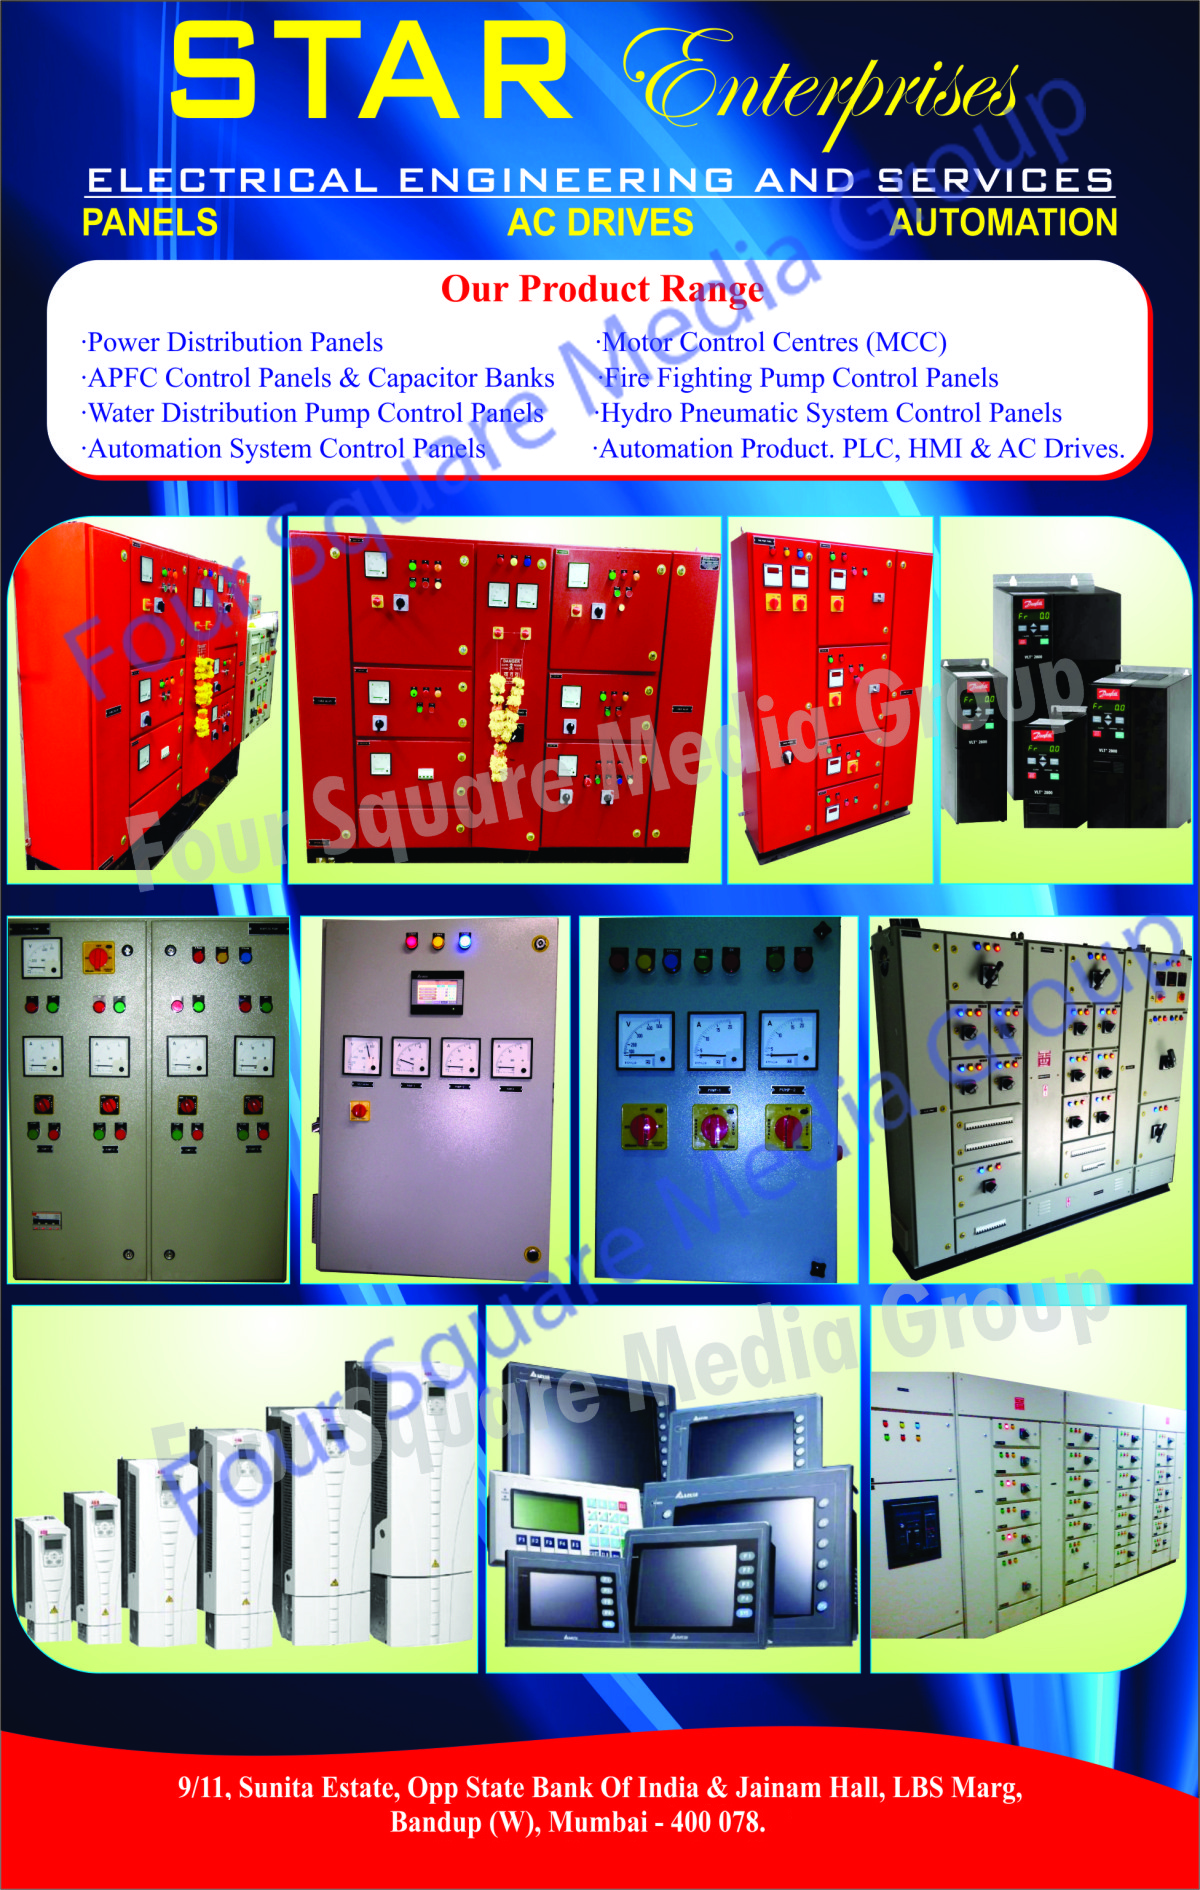 Power Distribution Panels, Motor Control Center, APFC Control Panels, Water Distribution Pump Control Panels, Automation System Control Panels, Fire Fighting Pump Control Panels, Hydro Pneumatic System Control Panels, Automation Products, PLC, HMI, AC Drives, Capacitor Banks